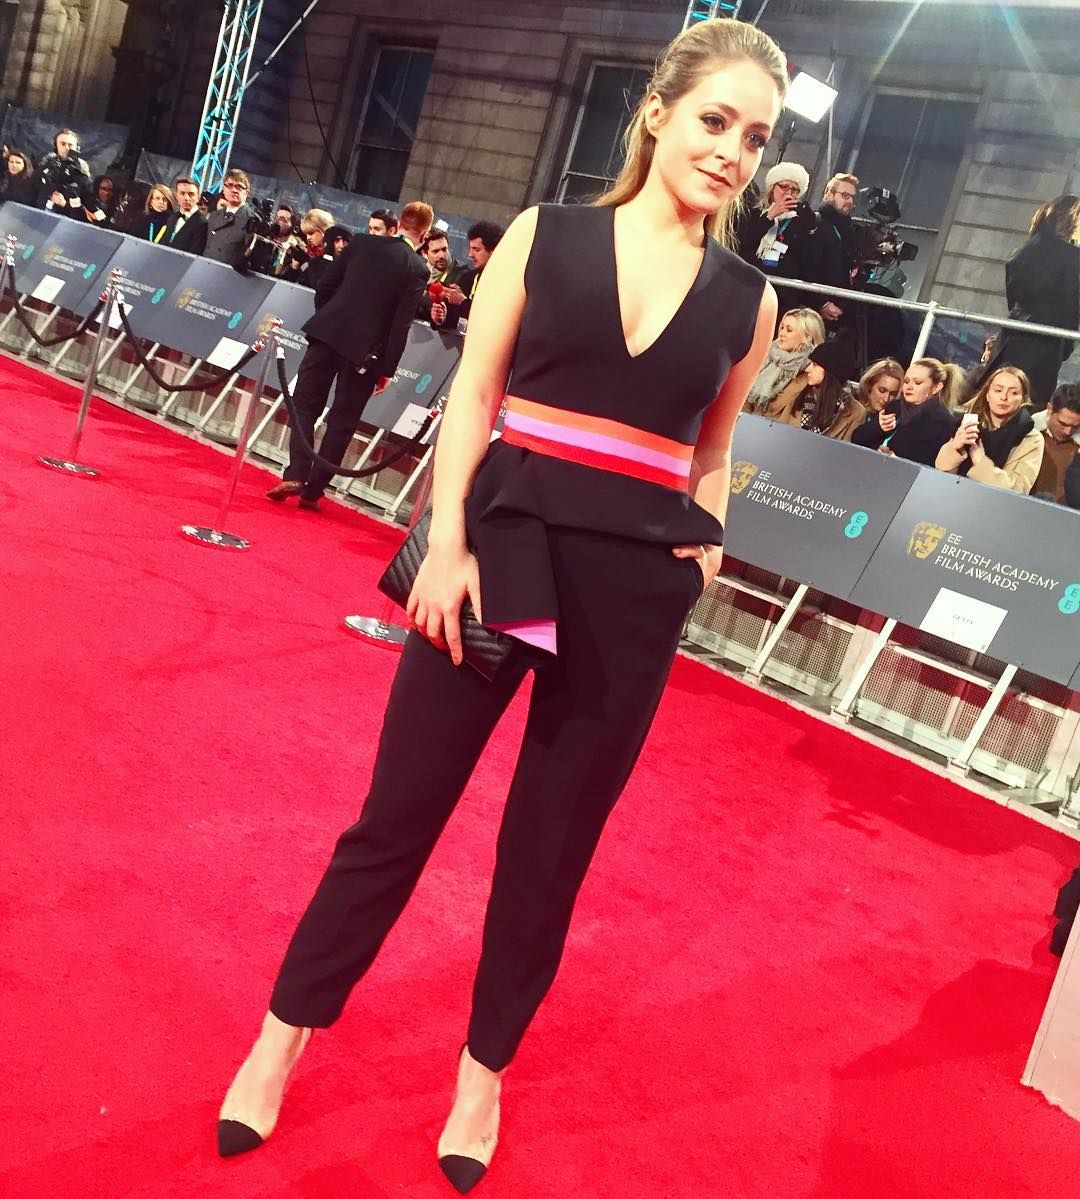 My outfit for this evening! @RoksandaIlincic Jumpsuit @GianvitoRossi Heels and @YSL Clutch - Massive thank you to @LibertyLondon for dressing me & @evianwater for inviting me! #EEBAFTAs #BAFTADeForce Hair by @CWHairLondon Makeup by me  by fleurdeforce